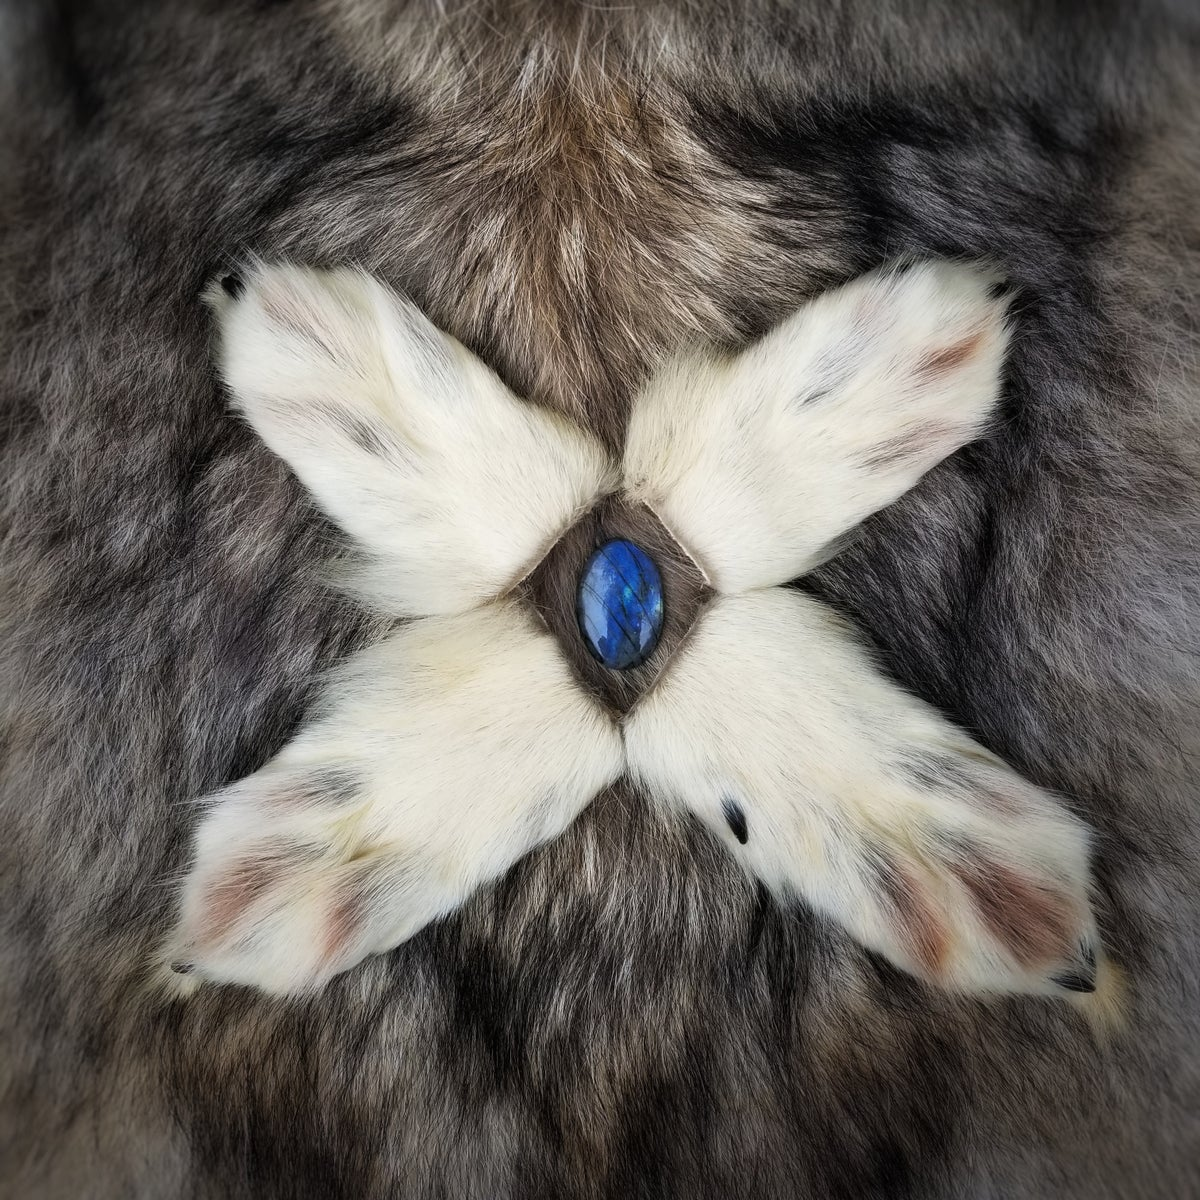 Image of Wolf Paws with Claws